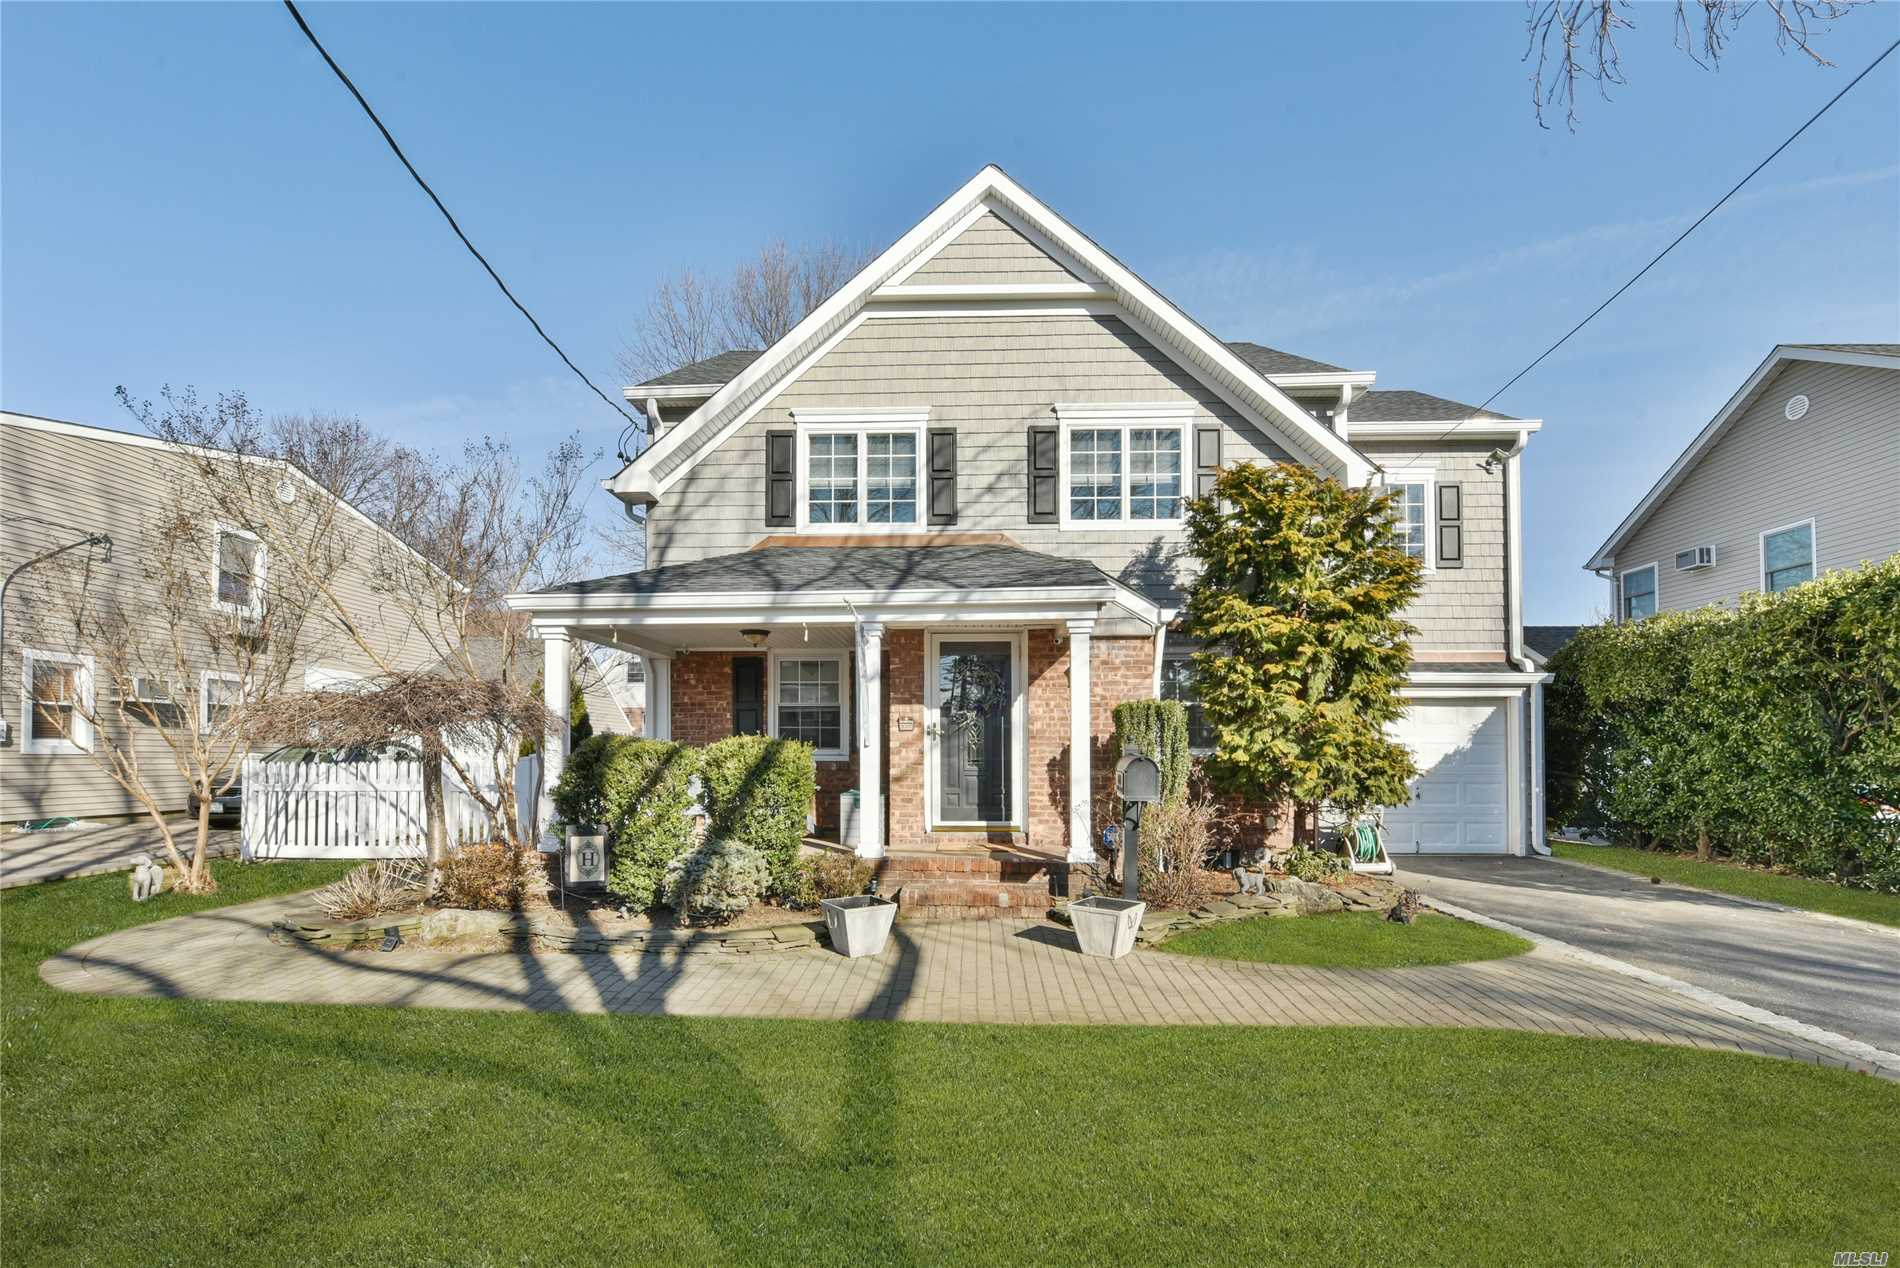 Expanded Colonial Boasts Newly Constructed Second Floor Addition. Master Suite W/Custom Closet, Master Bath W/Radiant Heat & Marble , New 2 Zone Cac/Gas Heat (3 Zones), Crown Molding & Andersen Windows, New Siding & Roof 2018 And More!!